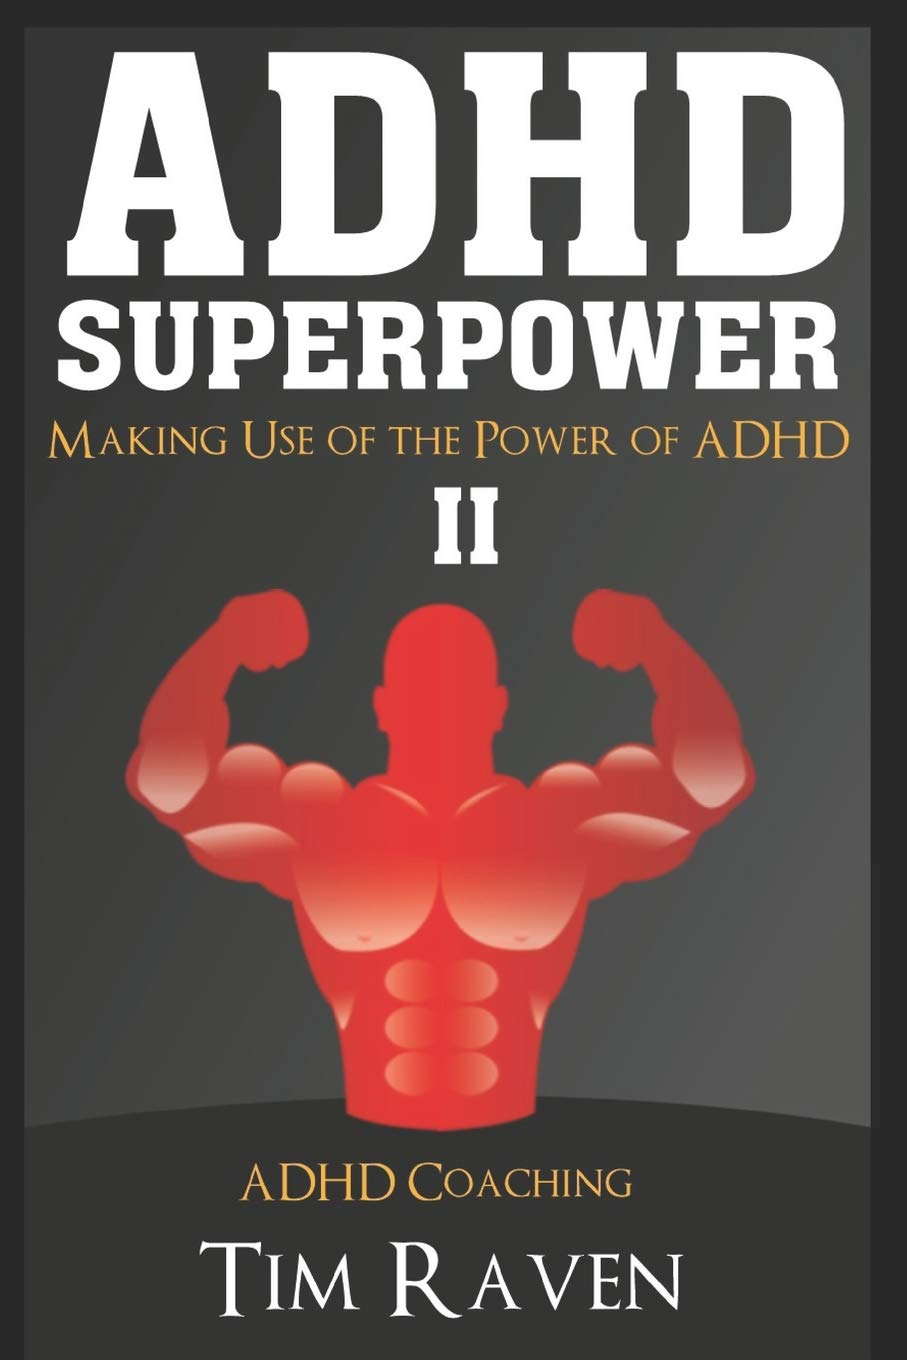 The Superpowers Of Adhd Psychologists >> Adhd Superpower Ii Making Use Of The Power Of Adhd Adhd